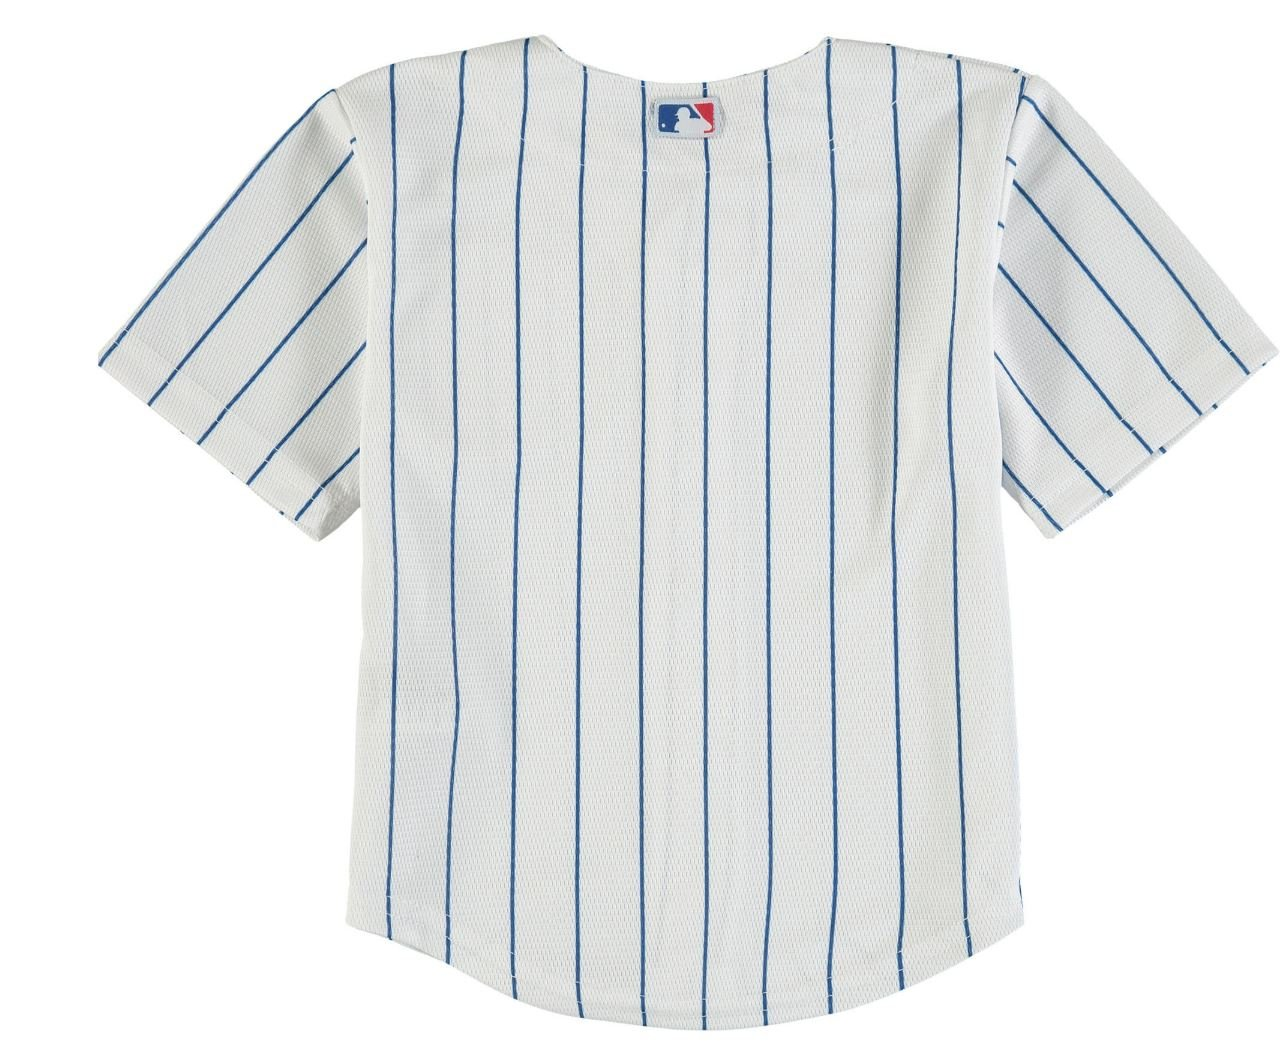 Chicago Cubs Home Infant Cool Base Replica Jersey by Majestic Select Infant Youth Size Toddler 24 Months